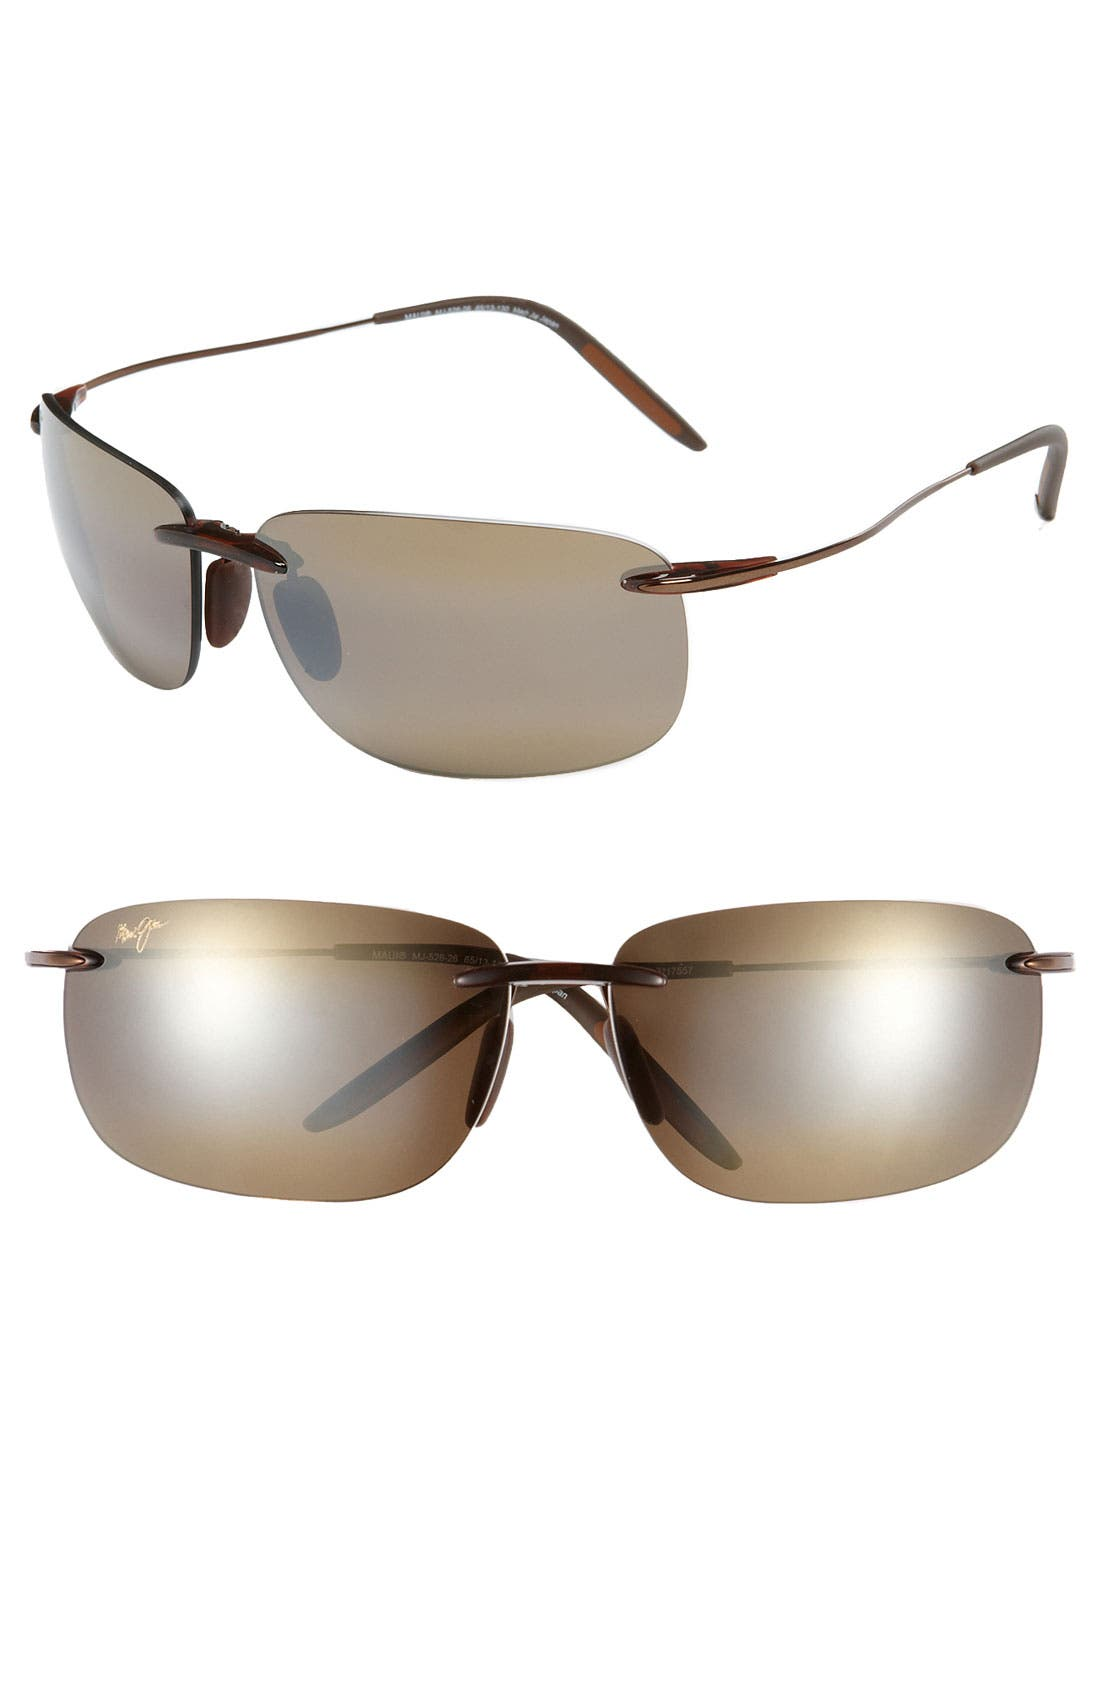 Olowalu 65mm PolarizedPlus2<sup>®</sup> Rimless Sunglasses,                         Main,                         color, Rootbeer Copper/ Bronze